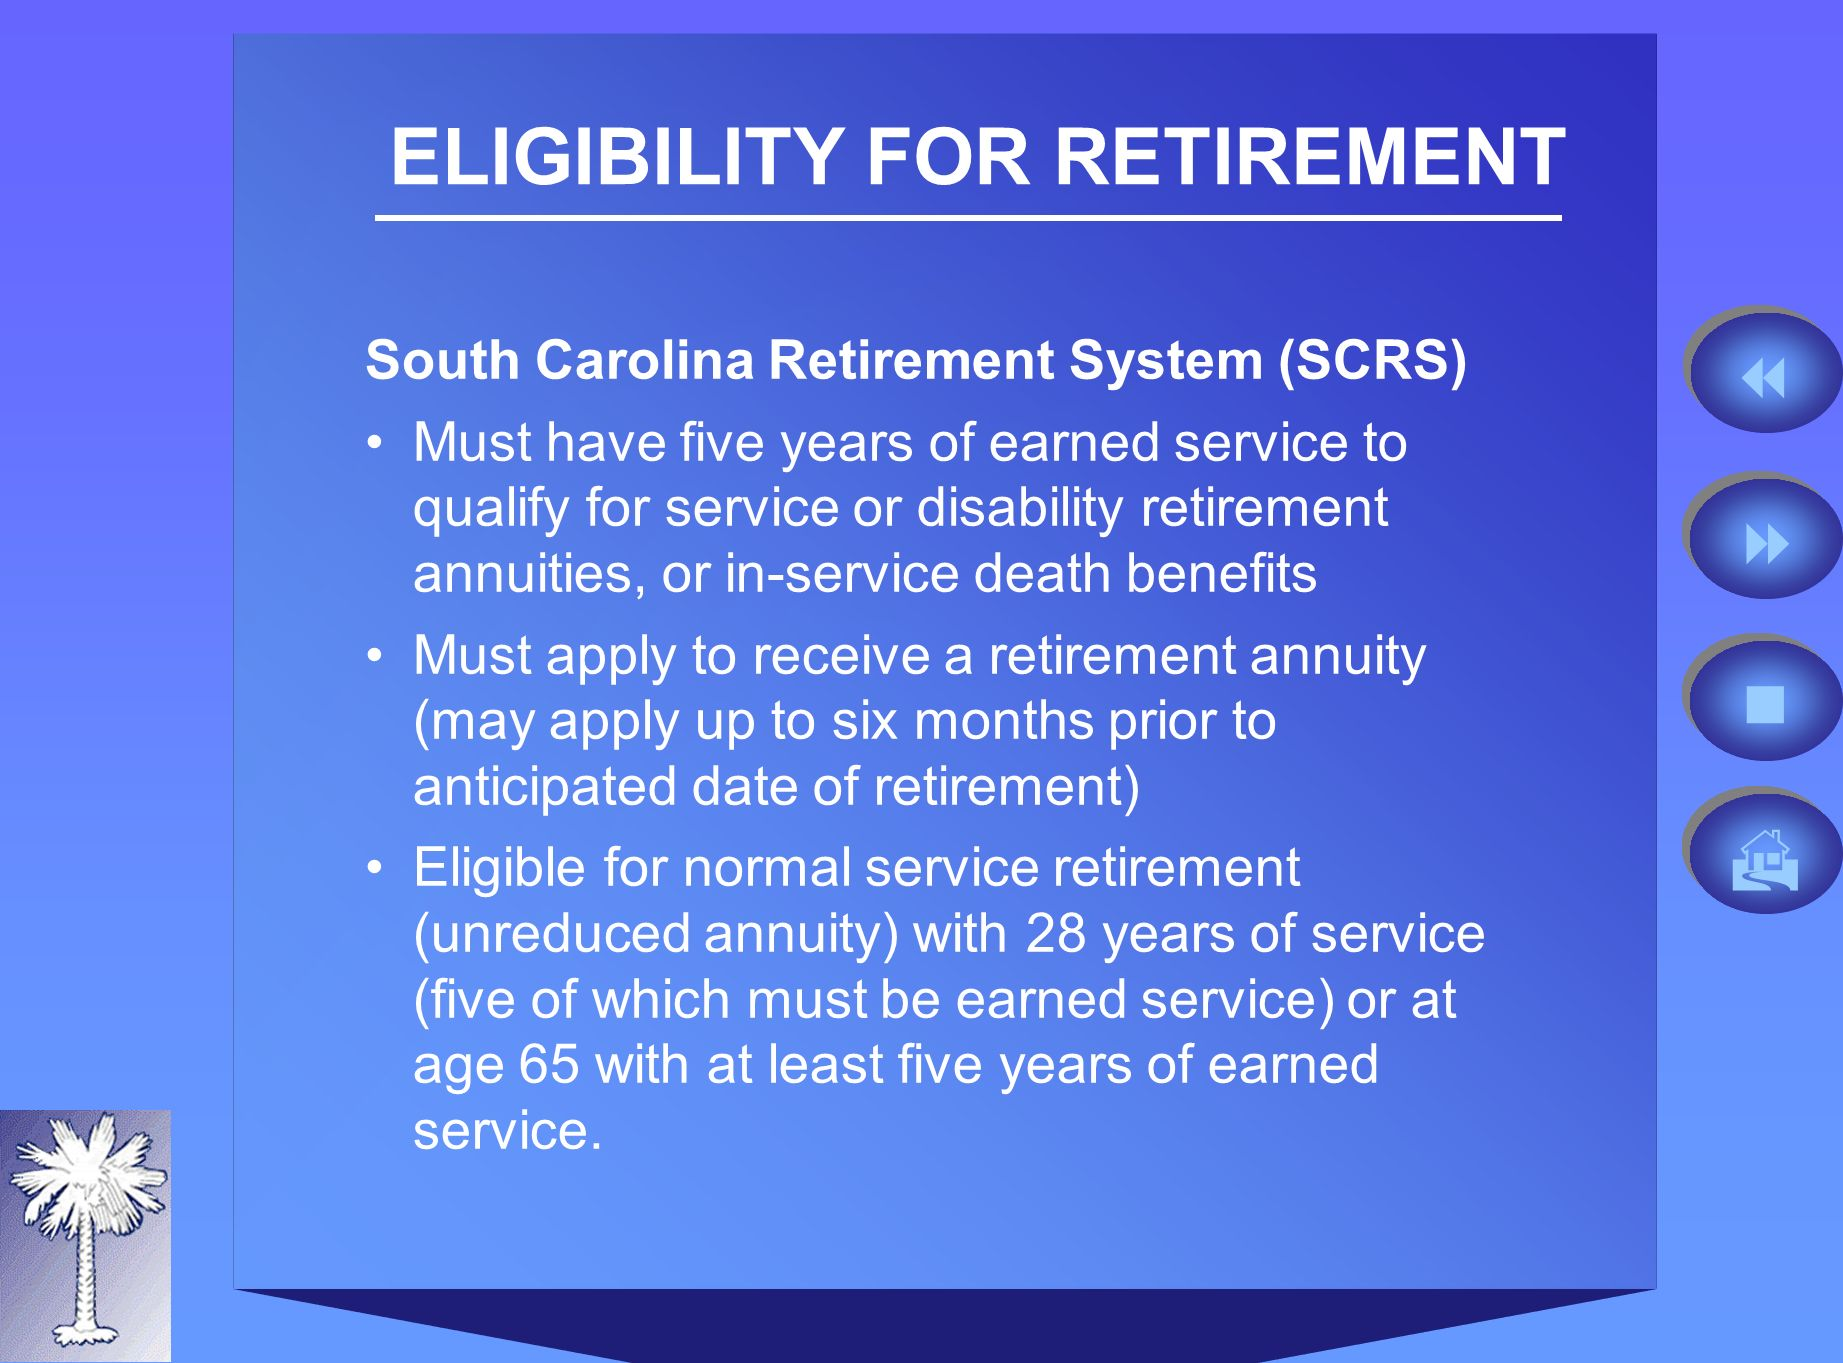 ELIGIBILITY FOR RETIREMENT South Carolina Retirement System (SCRS) Must have five years of earned service to qualify for service or disability retirement annuities, or in-service death benefits Must apply to receive a retirement annuity (may apply up to six months prior to anticipated date of retirement) Eligible for normal service retirement (unreduced annuity) with 28 years of service (five of which must be earned service) or at age 65 with at least five years of earned service.